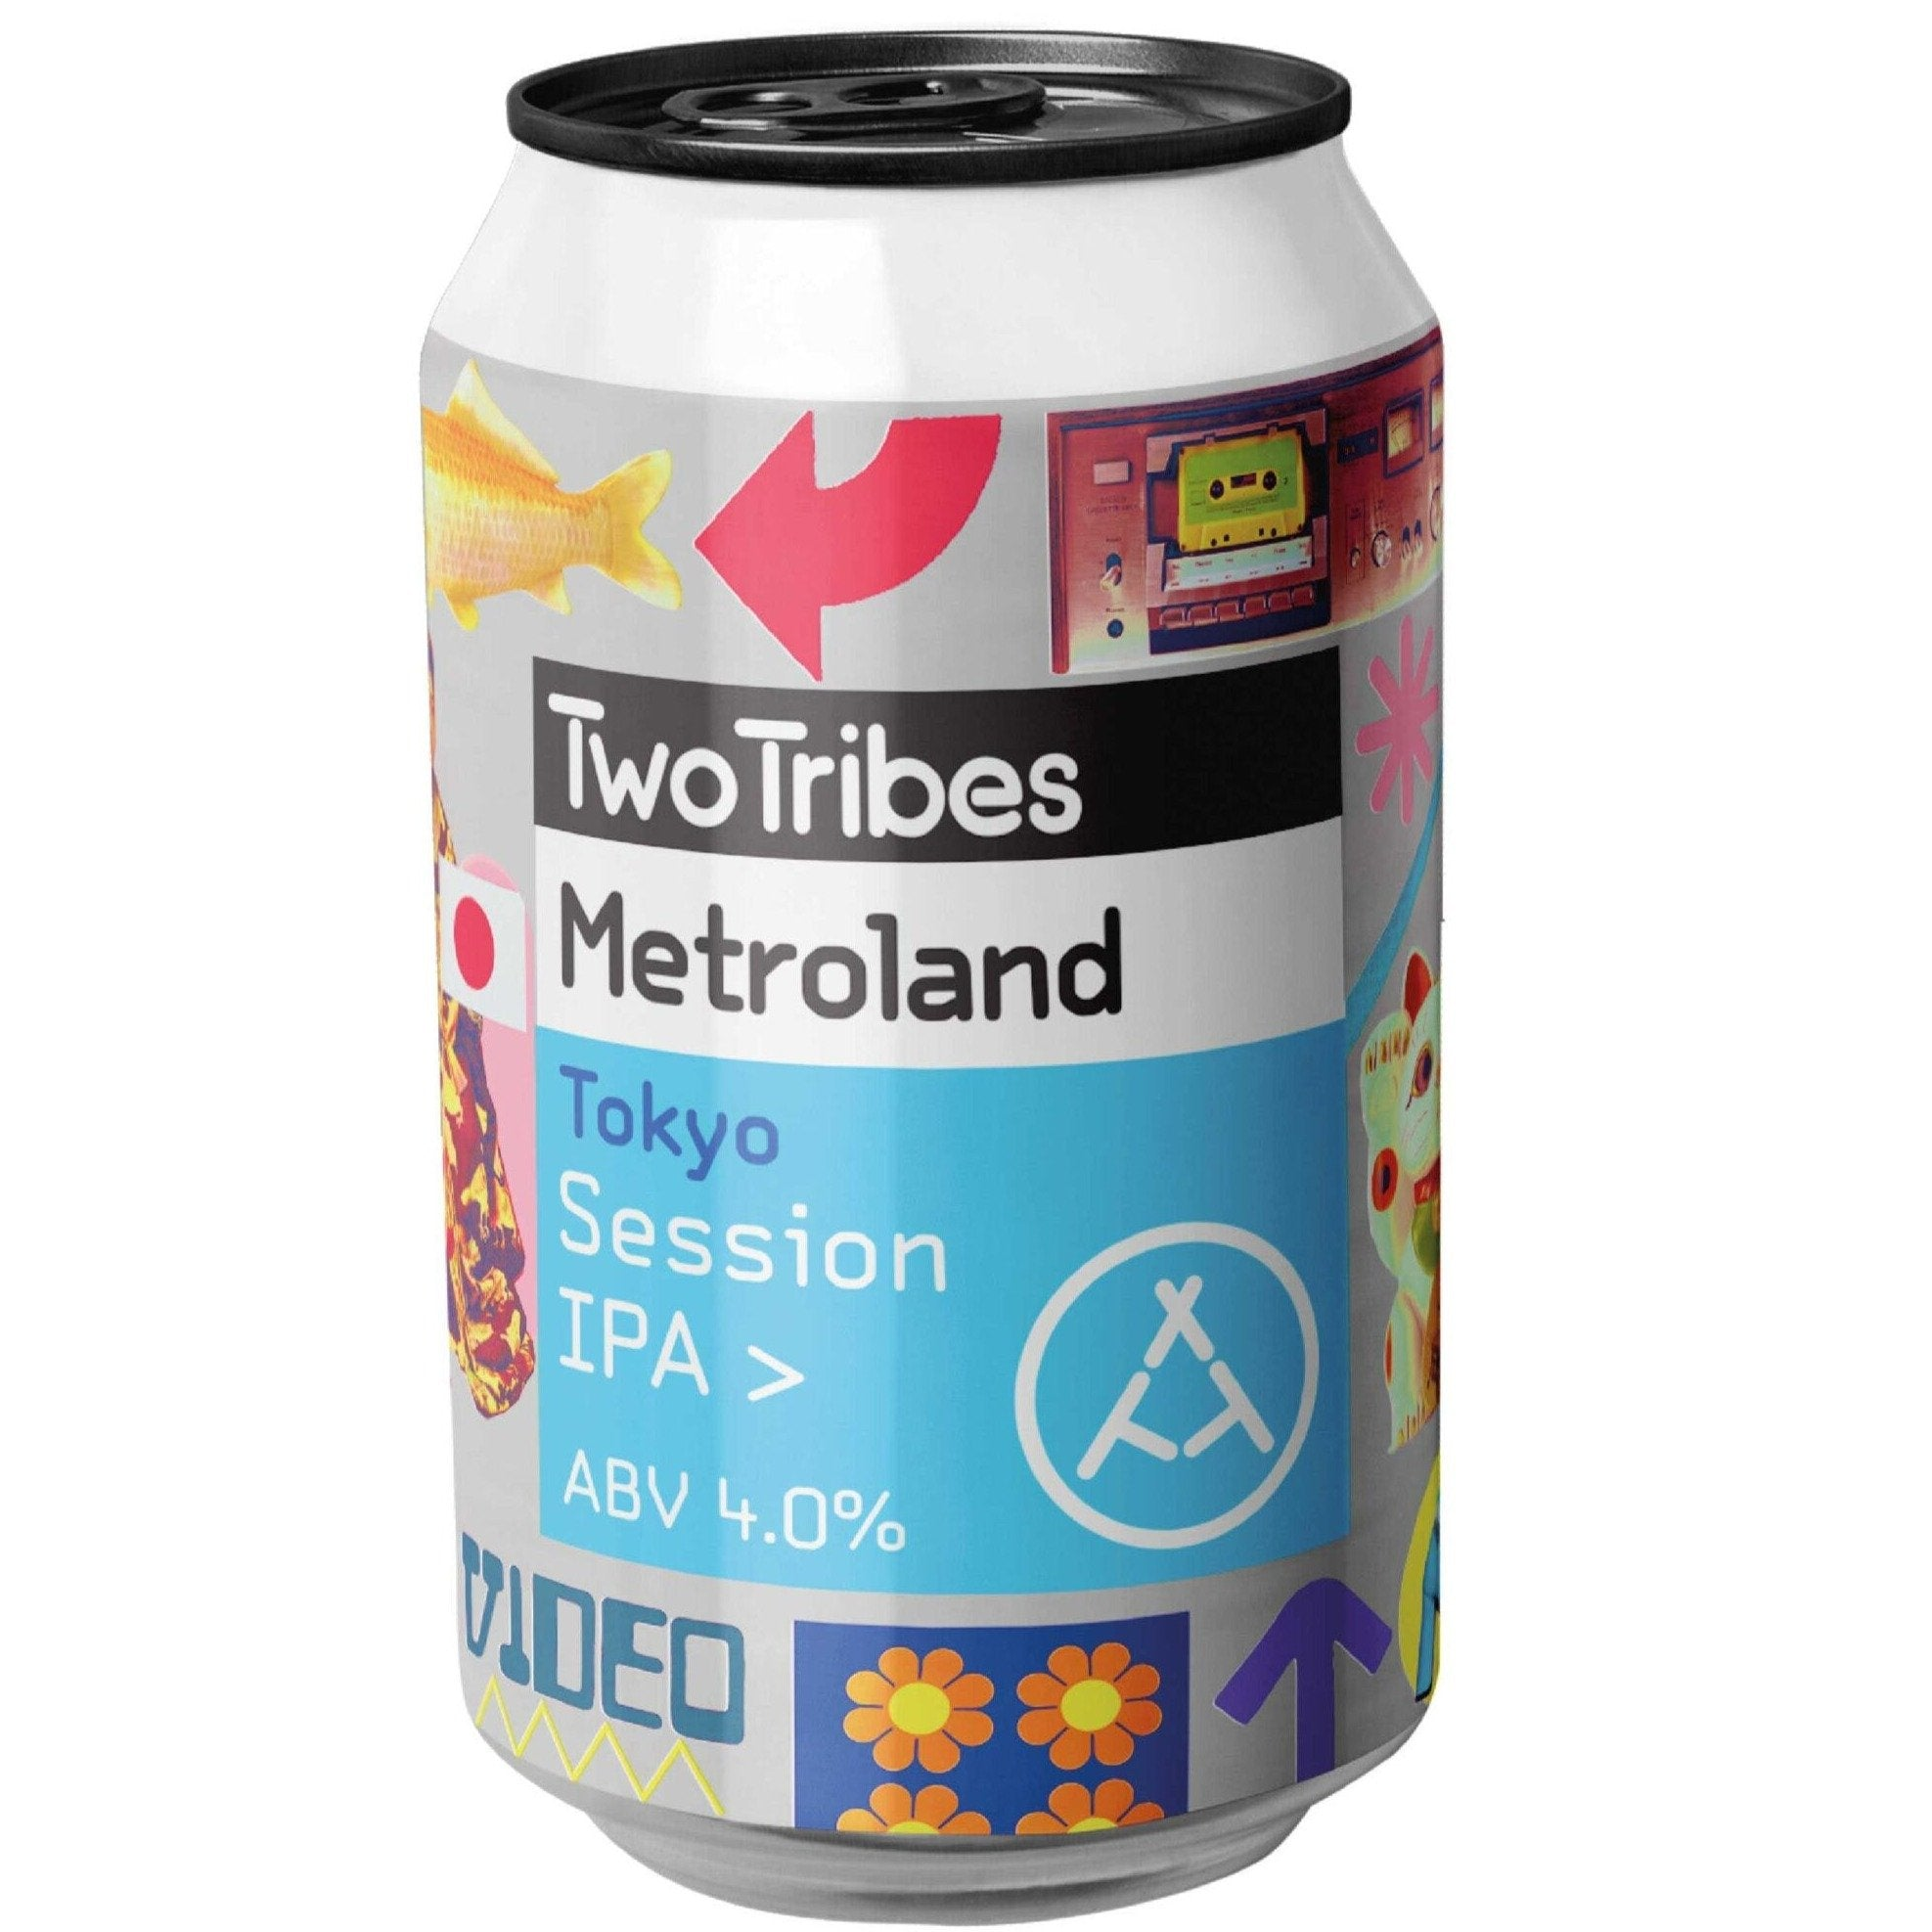 Two Tribes Metroland Tokyo Session IPA 330ml (4%)